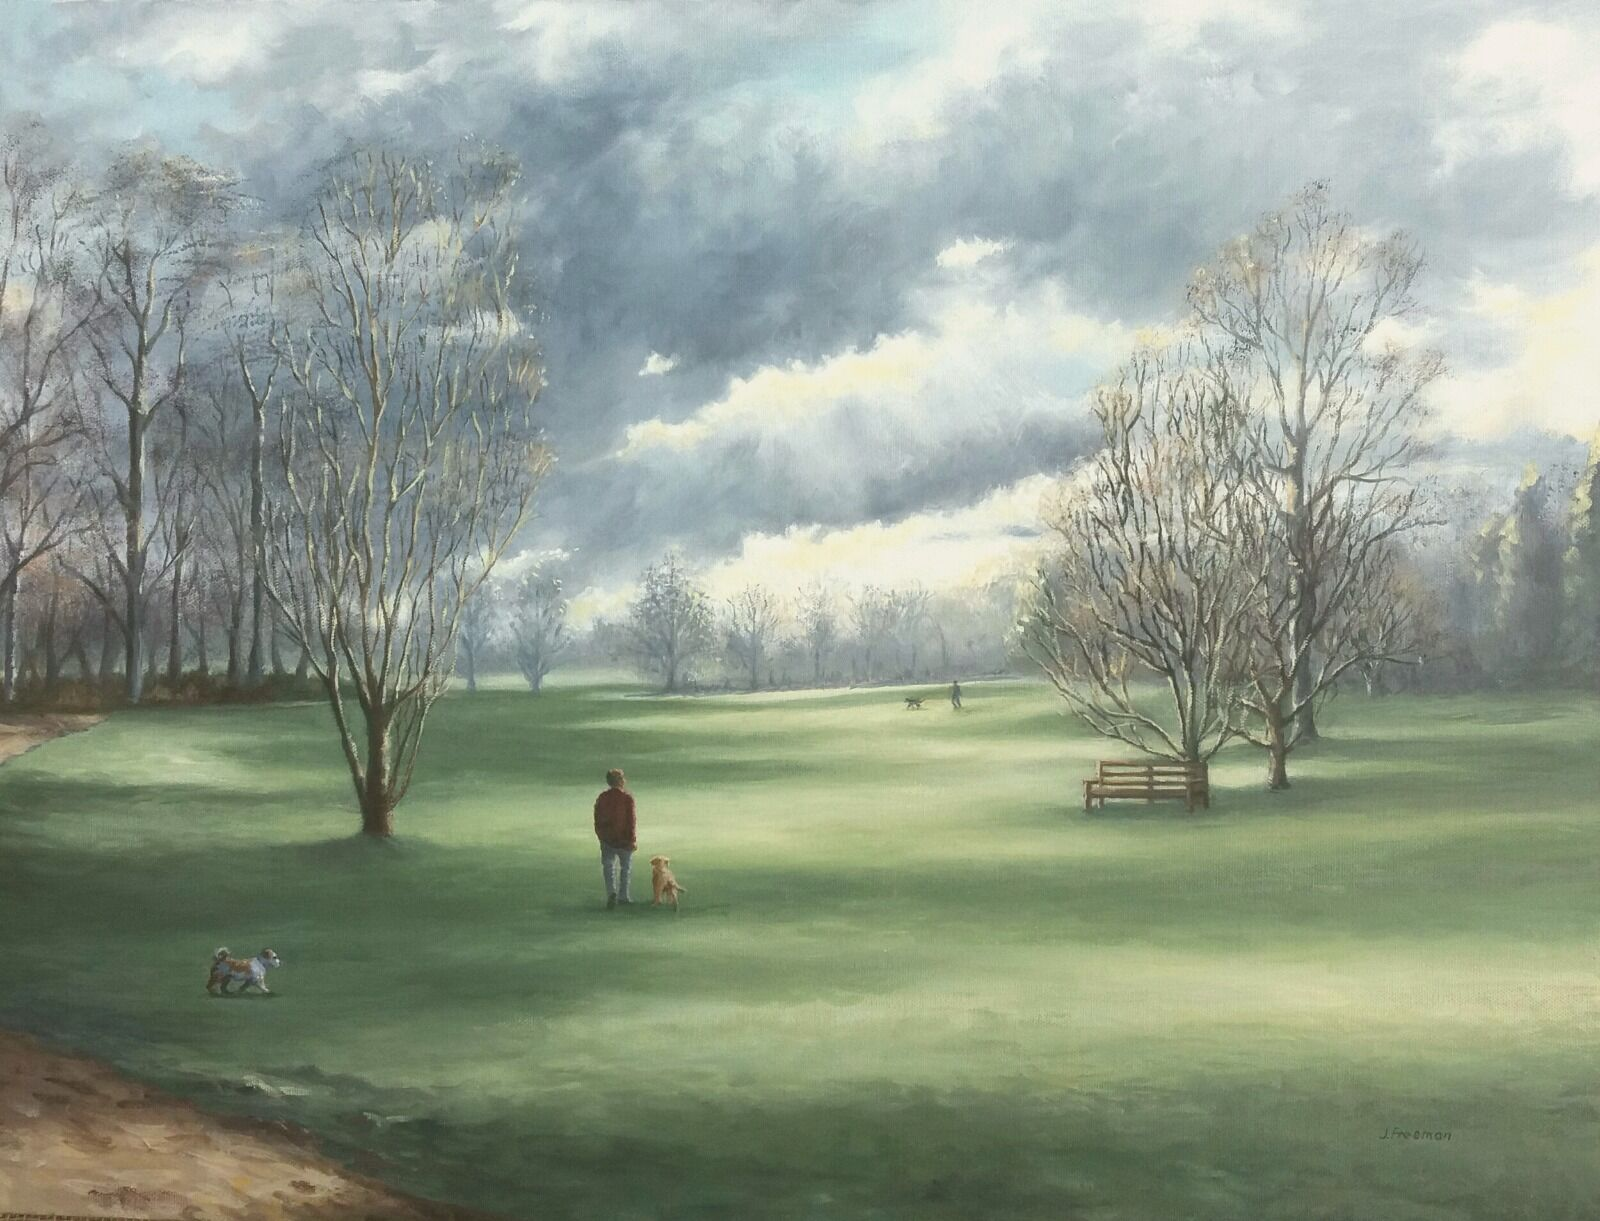 Evening walk on the Carrs in oils